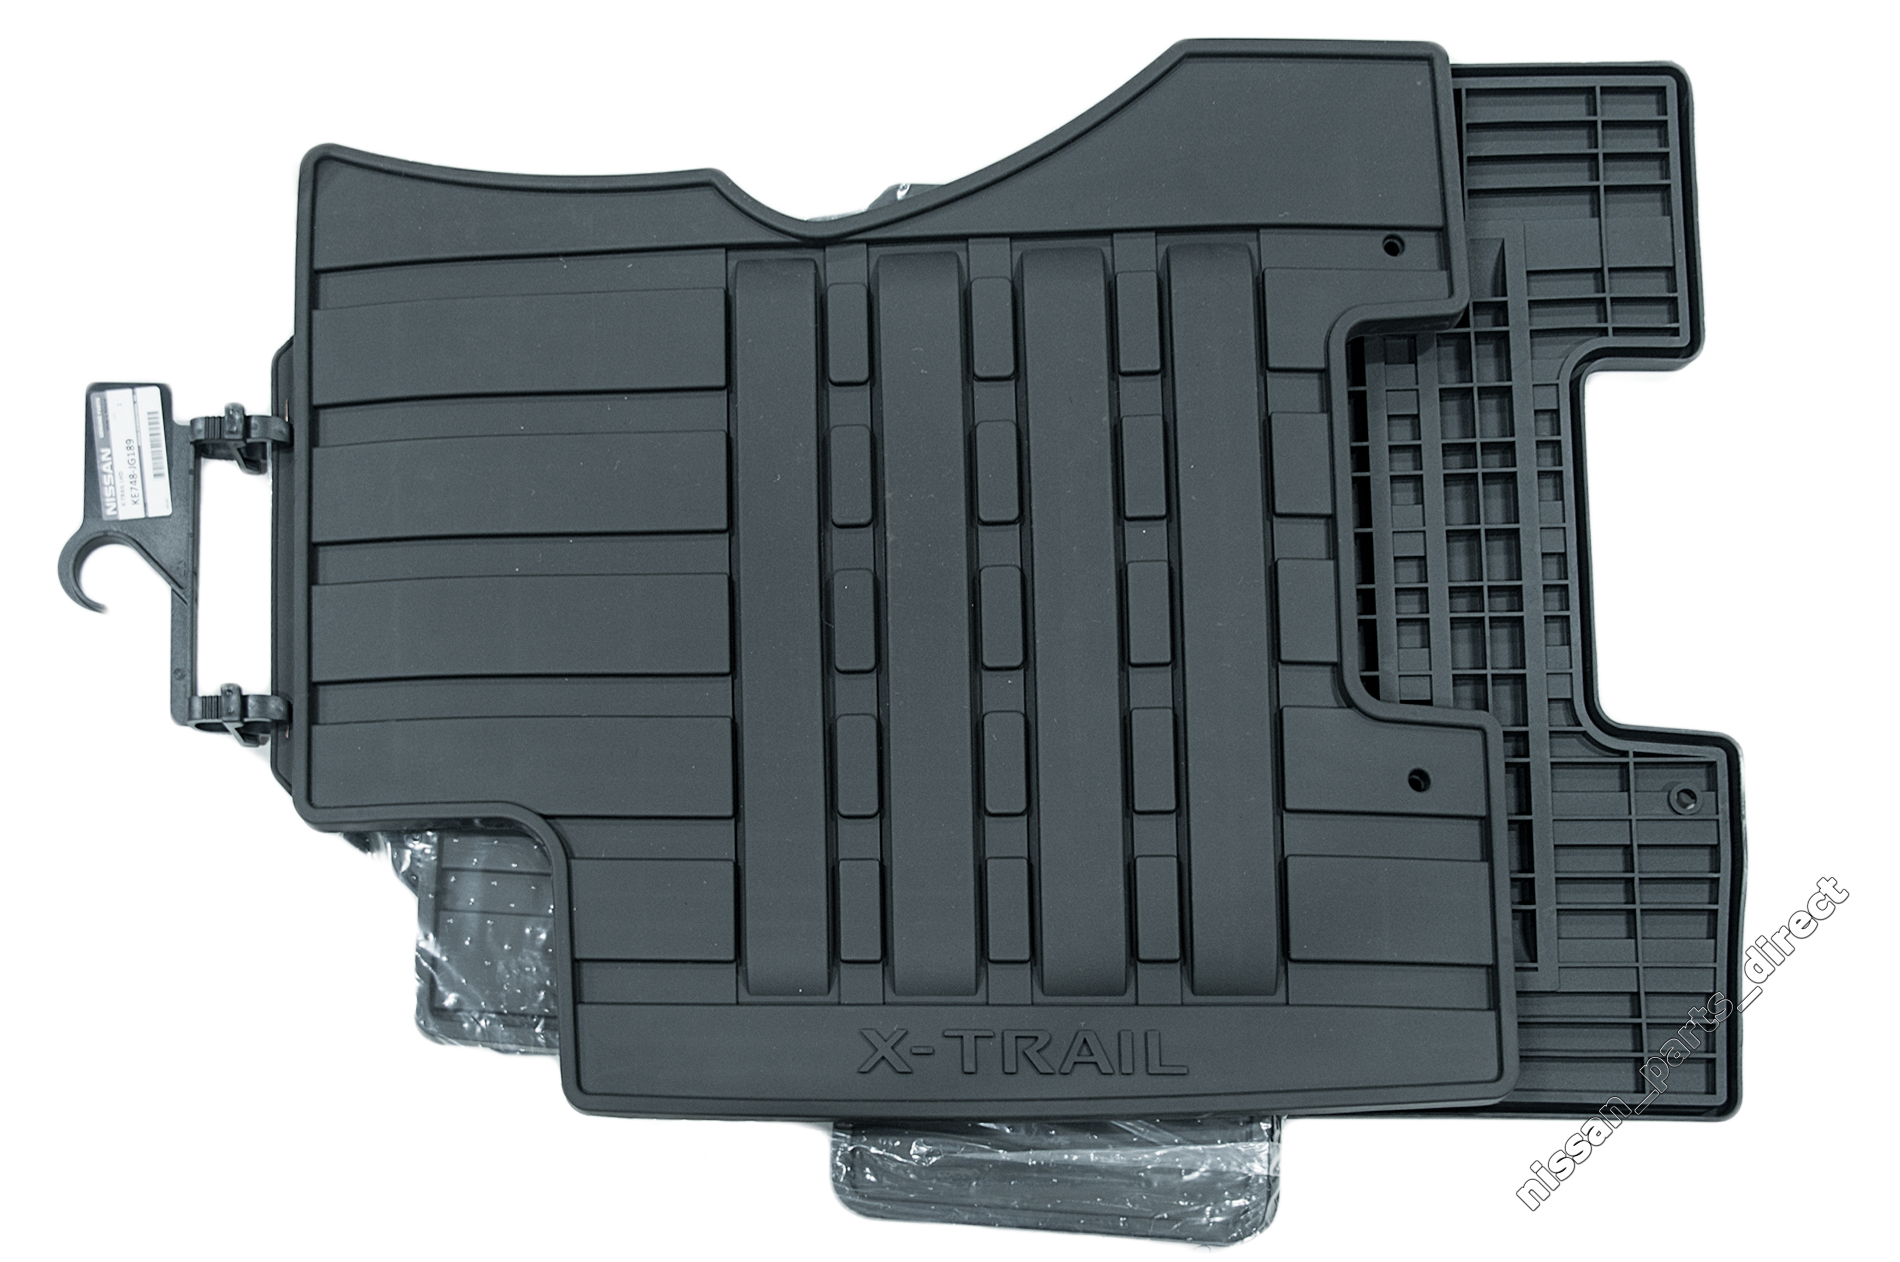 Nissan Genuine X Trail T31 All Weather Floor Mats Rubber